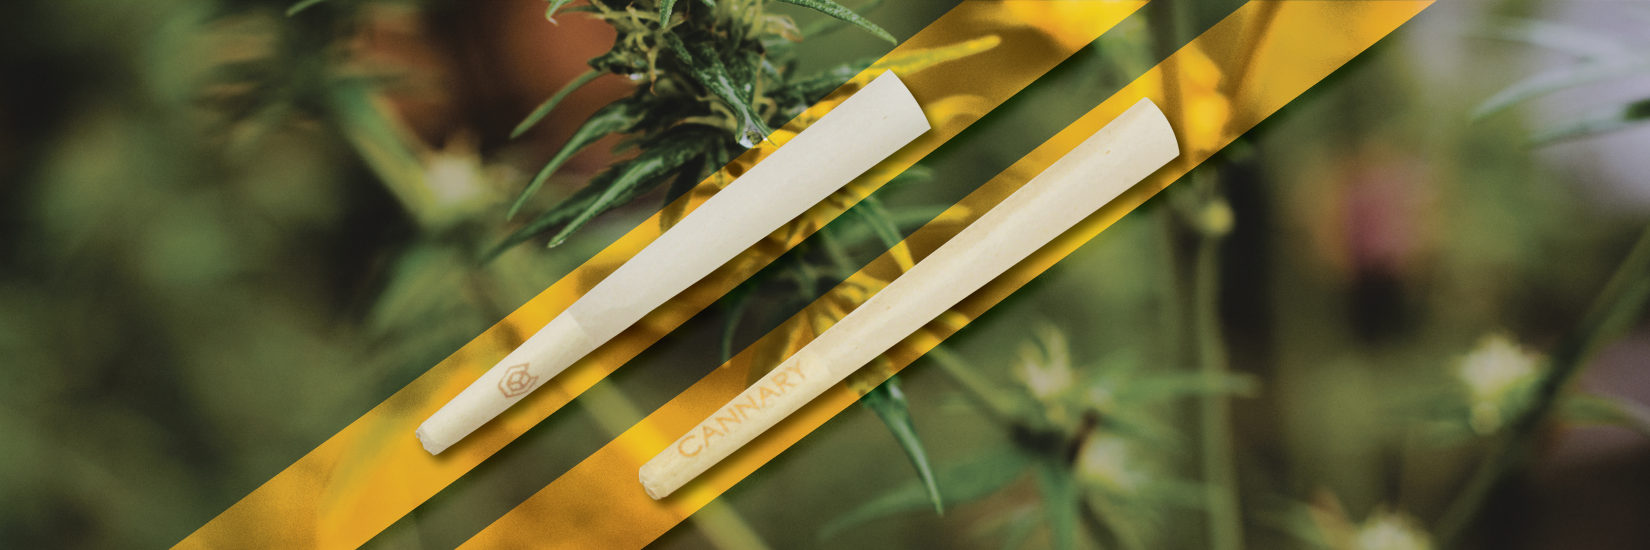 Product Spotlight: Pre-Rolled Cones - Cannacones